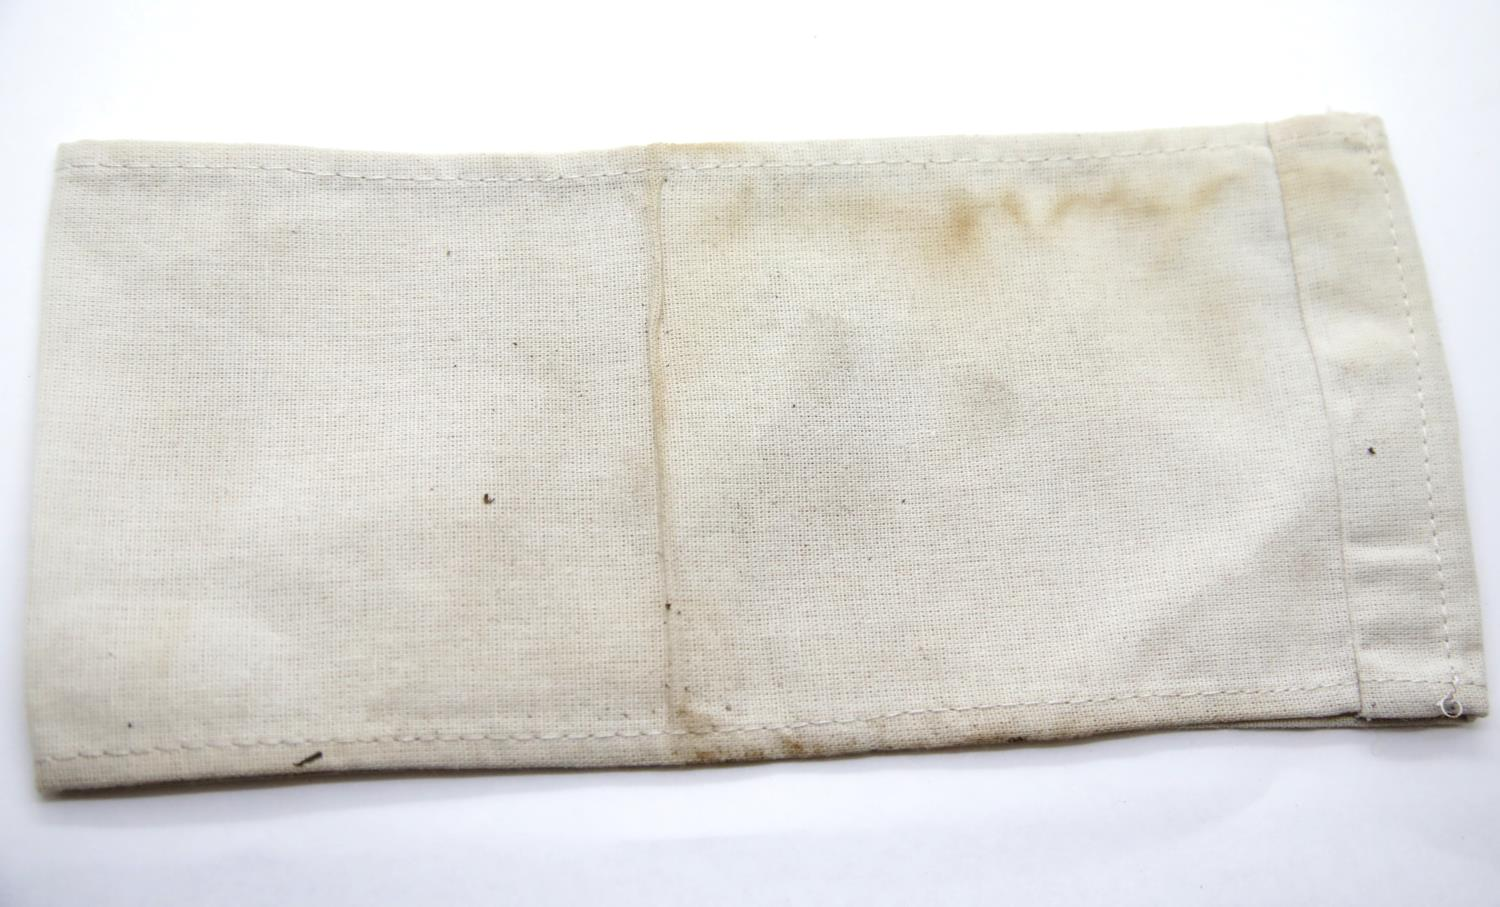 Lot 3058 - WWII type Jewish KAPO armband. P&P Group 1 (£14+VAT for the first lot and £1+VAT for subsequent